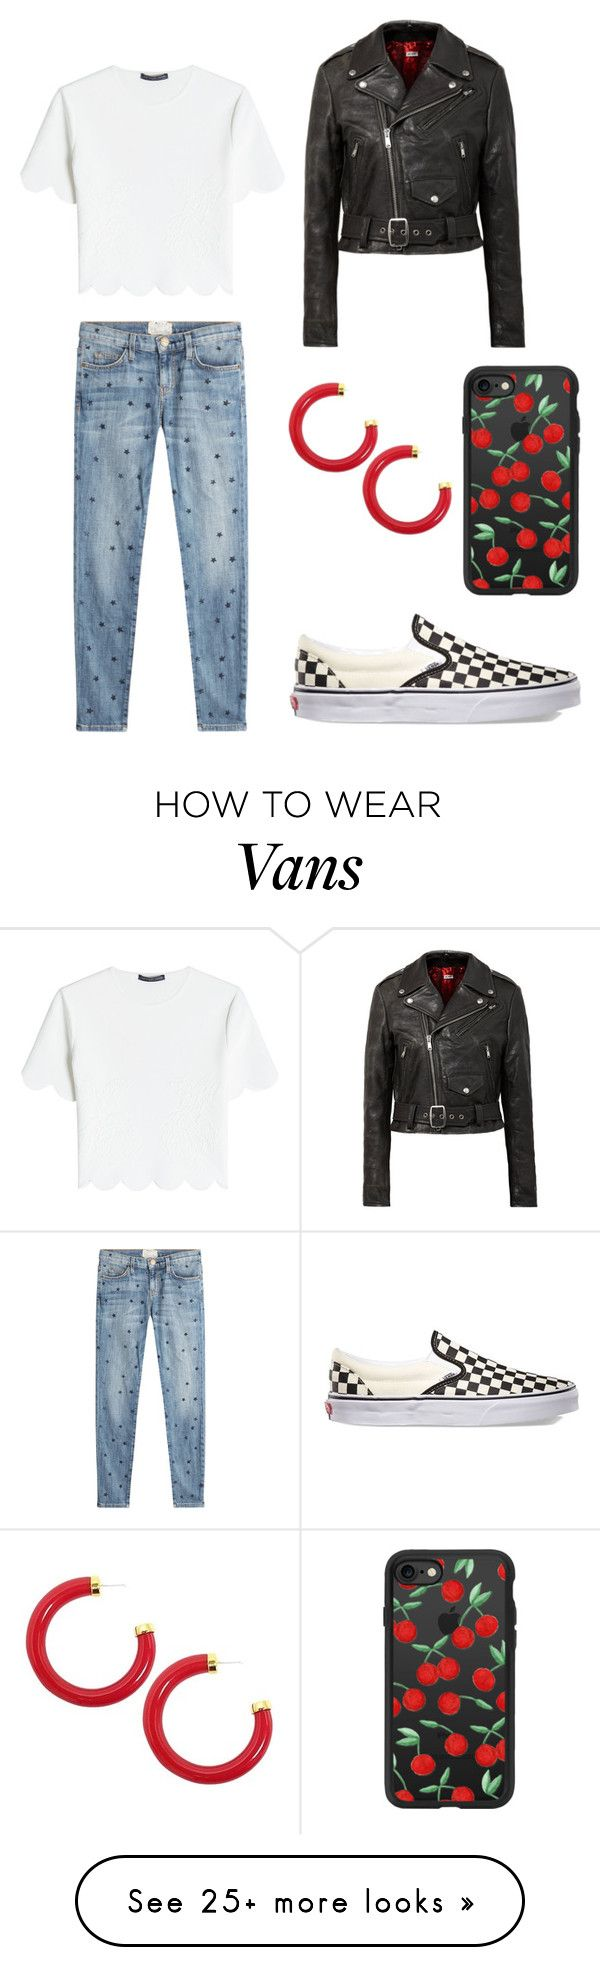 """""""Suggested """" by emmathekilljoy on Polyvore featuring RE/DONE, Vans, Current/Elliott, Casetify, Alexander McQueen and Kenneth Jay Lane"""